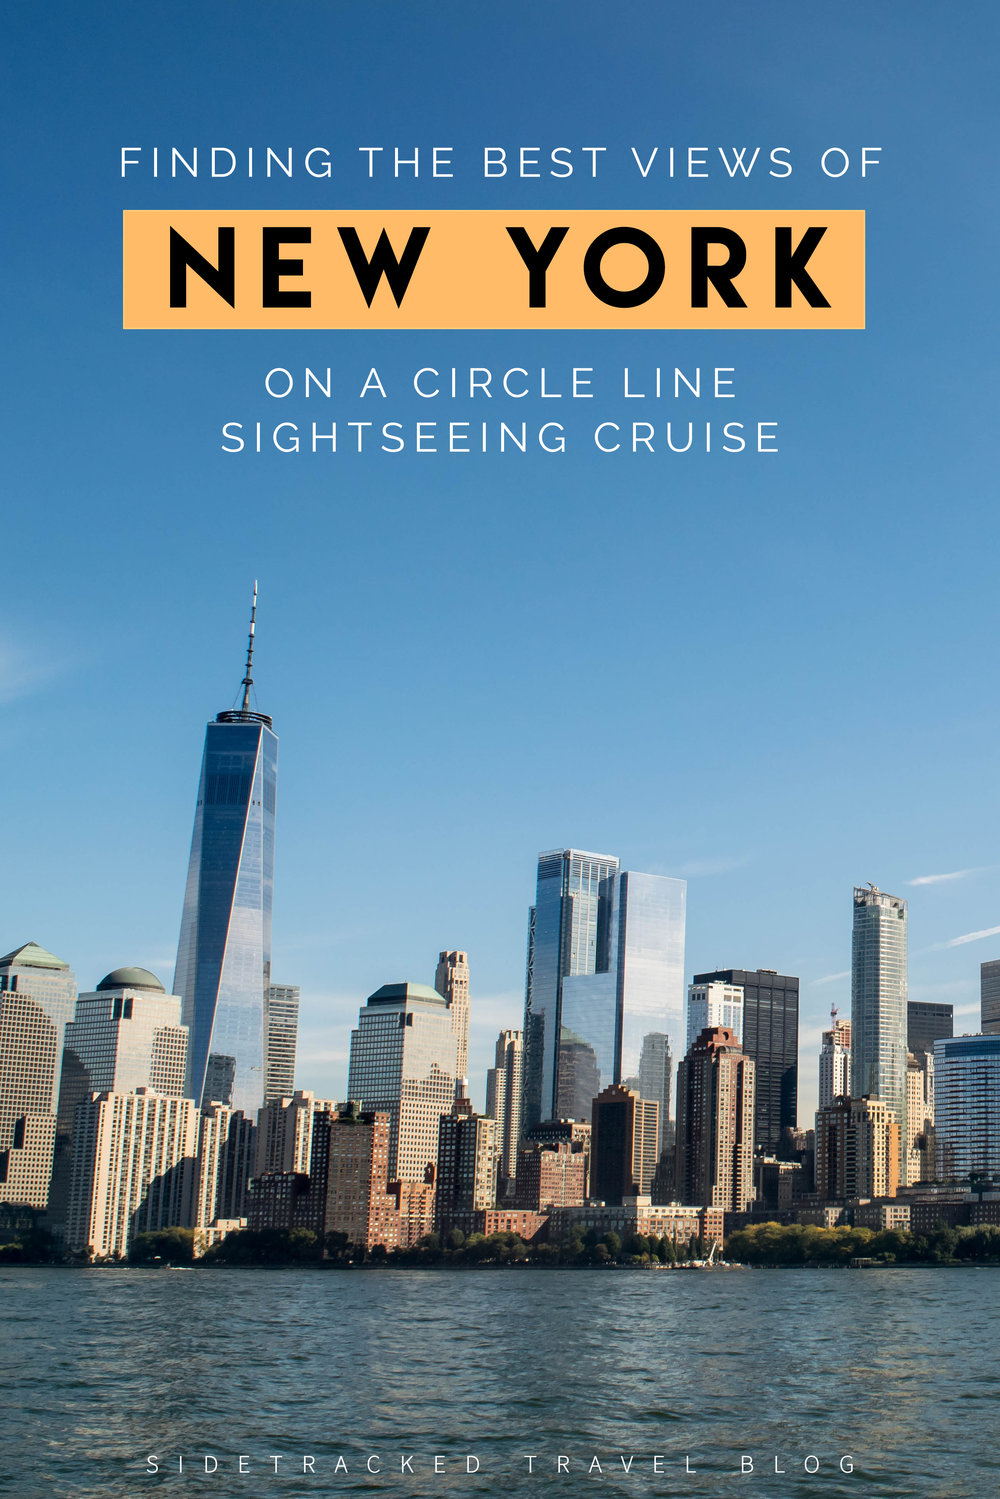 Many of the best views of New York can be found from observation decks high atop notable buildings. But what happens when you head down to sea level instead? From what I saw on a Circle Line Sightseeing Cruise, the views are just as grand!